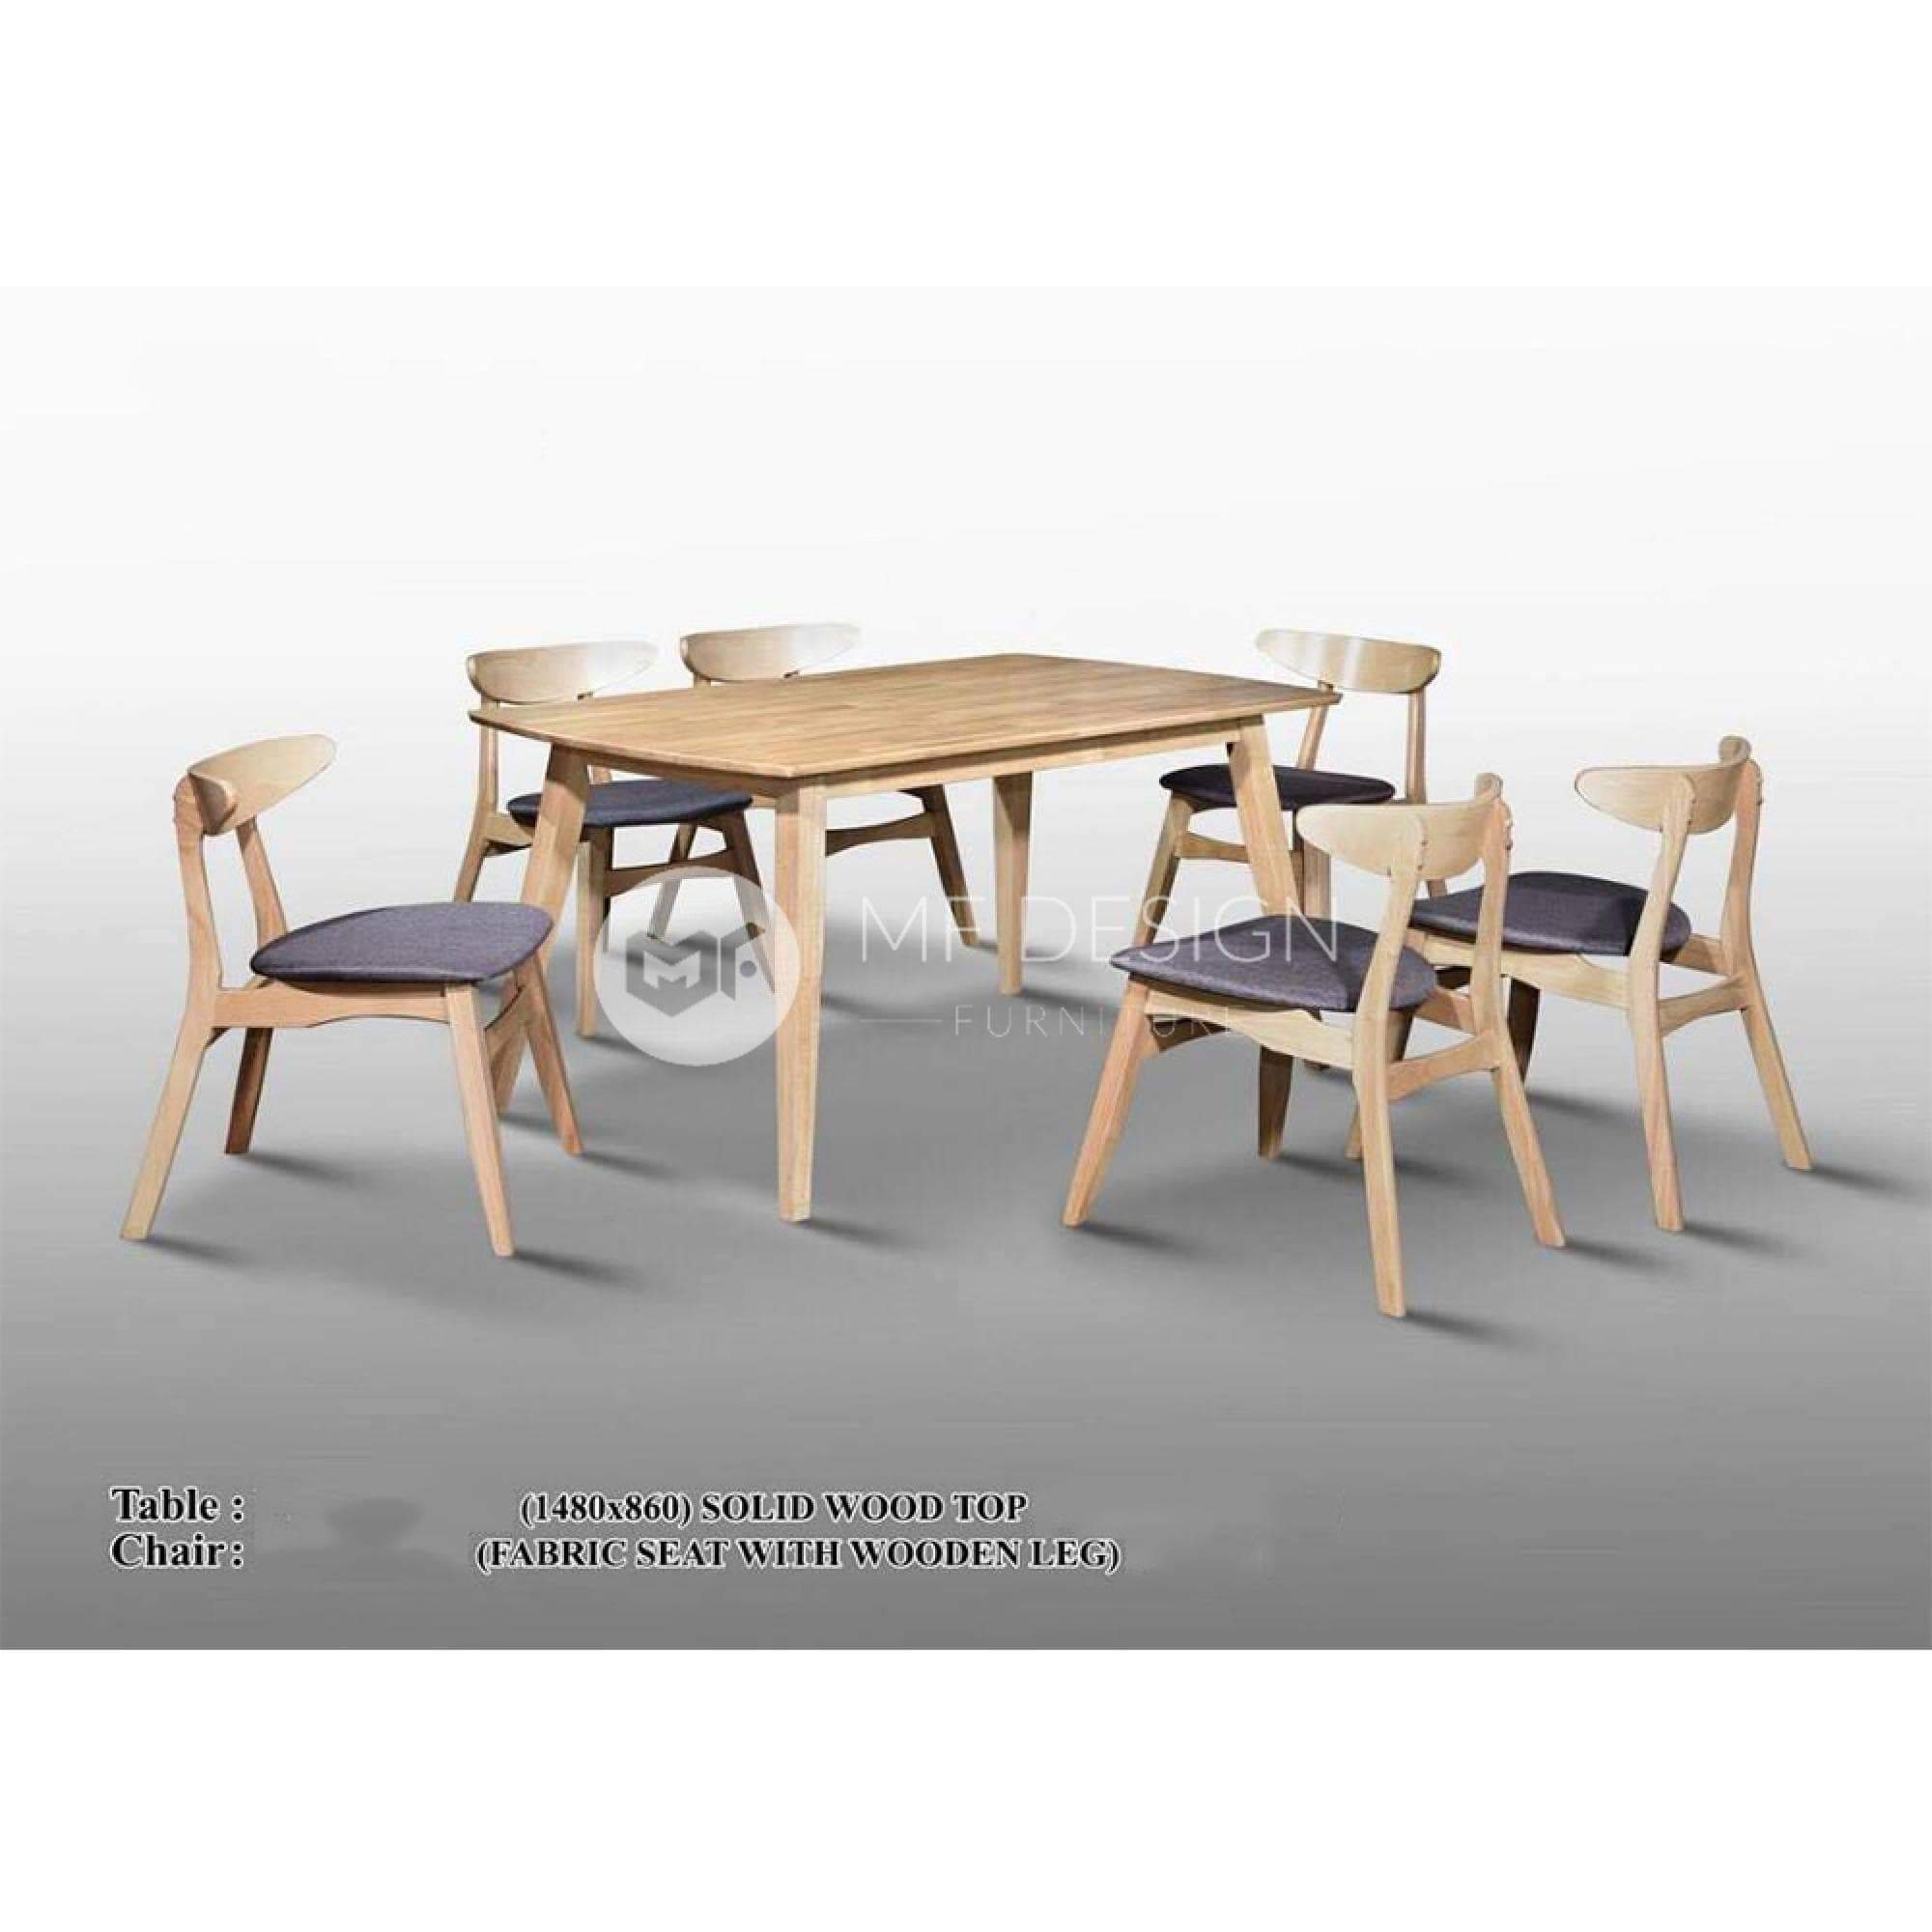 mfdesign88 Dining Sets Jaxson Dining Set ( 1 Table + 6 Chairs  )